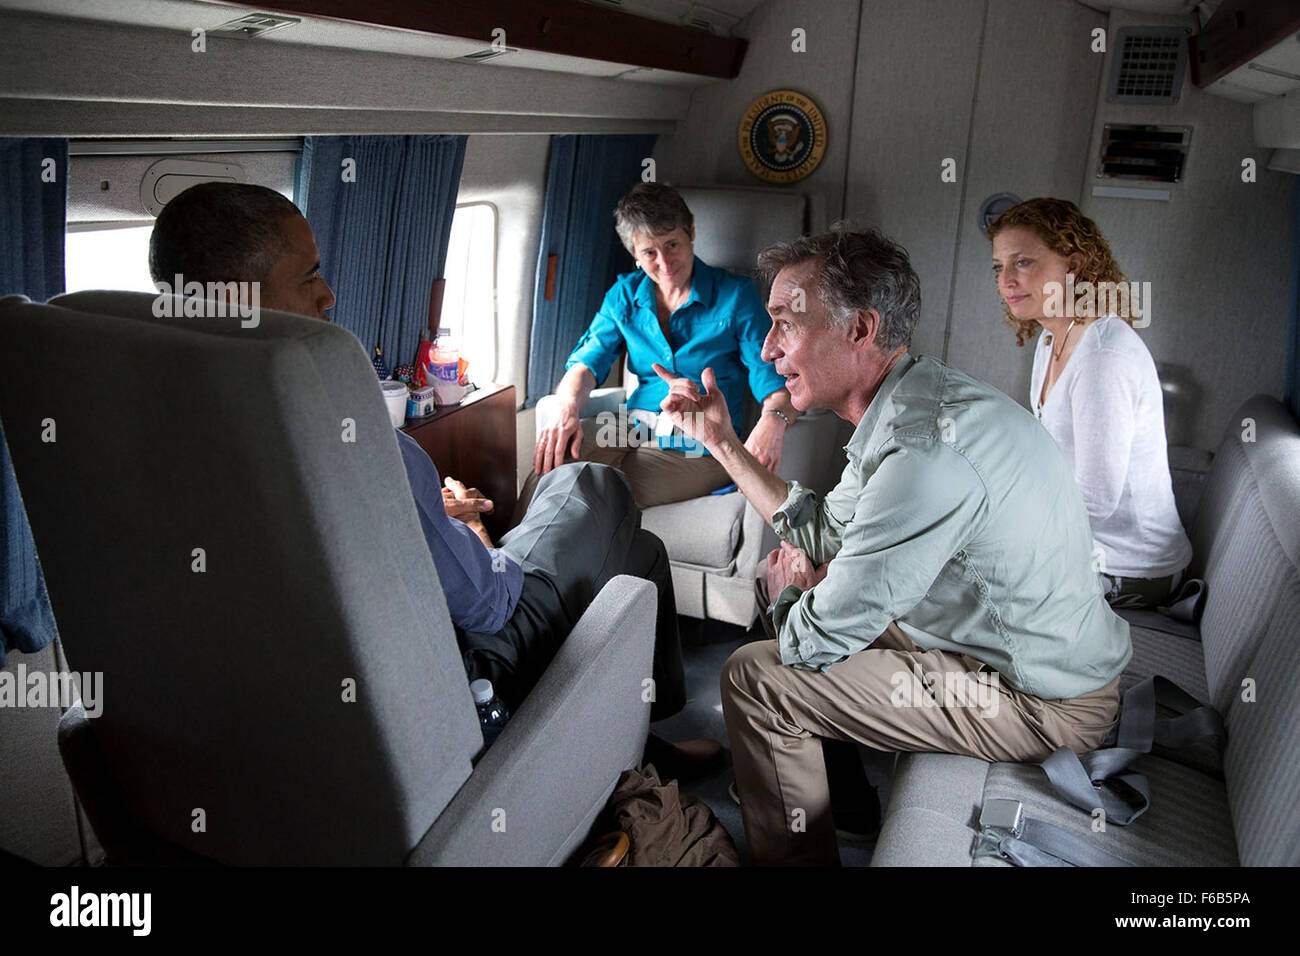 President Barack Obama talks with Bill Nye, the Science Guy, Rep. Debbie Wasserman Schultz, D-Fla., and Interior Secretary Sally Jewell aboard Marine One en route to Miami International Airport following a visit to Everglades National Park, Fla. on Earth Day, April 22, 2015. Stock Photo